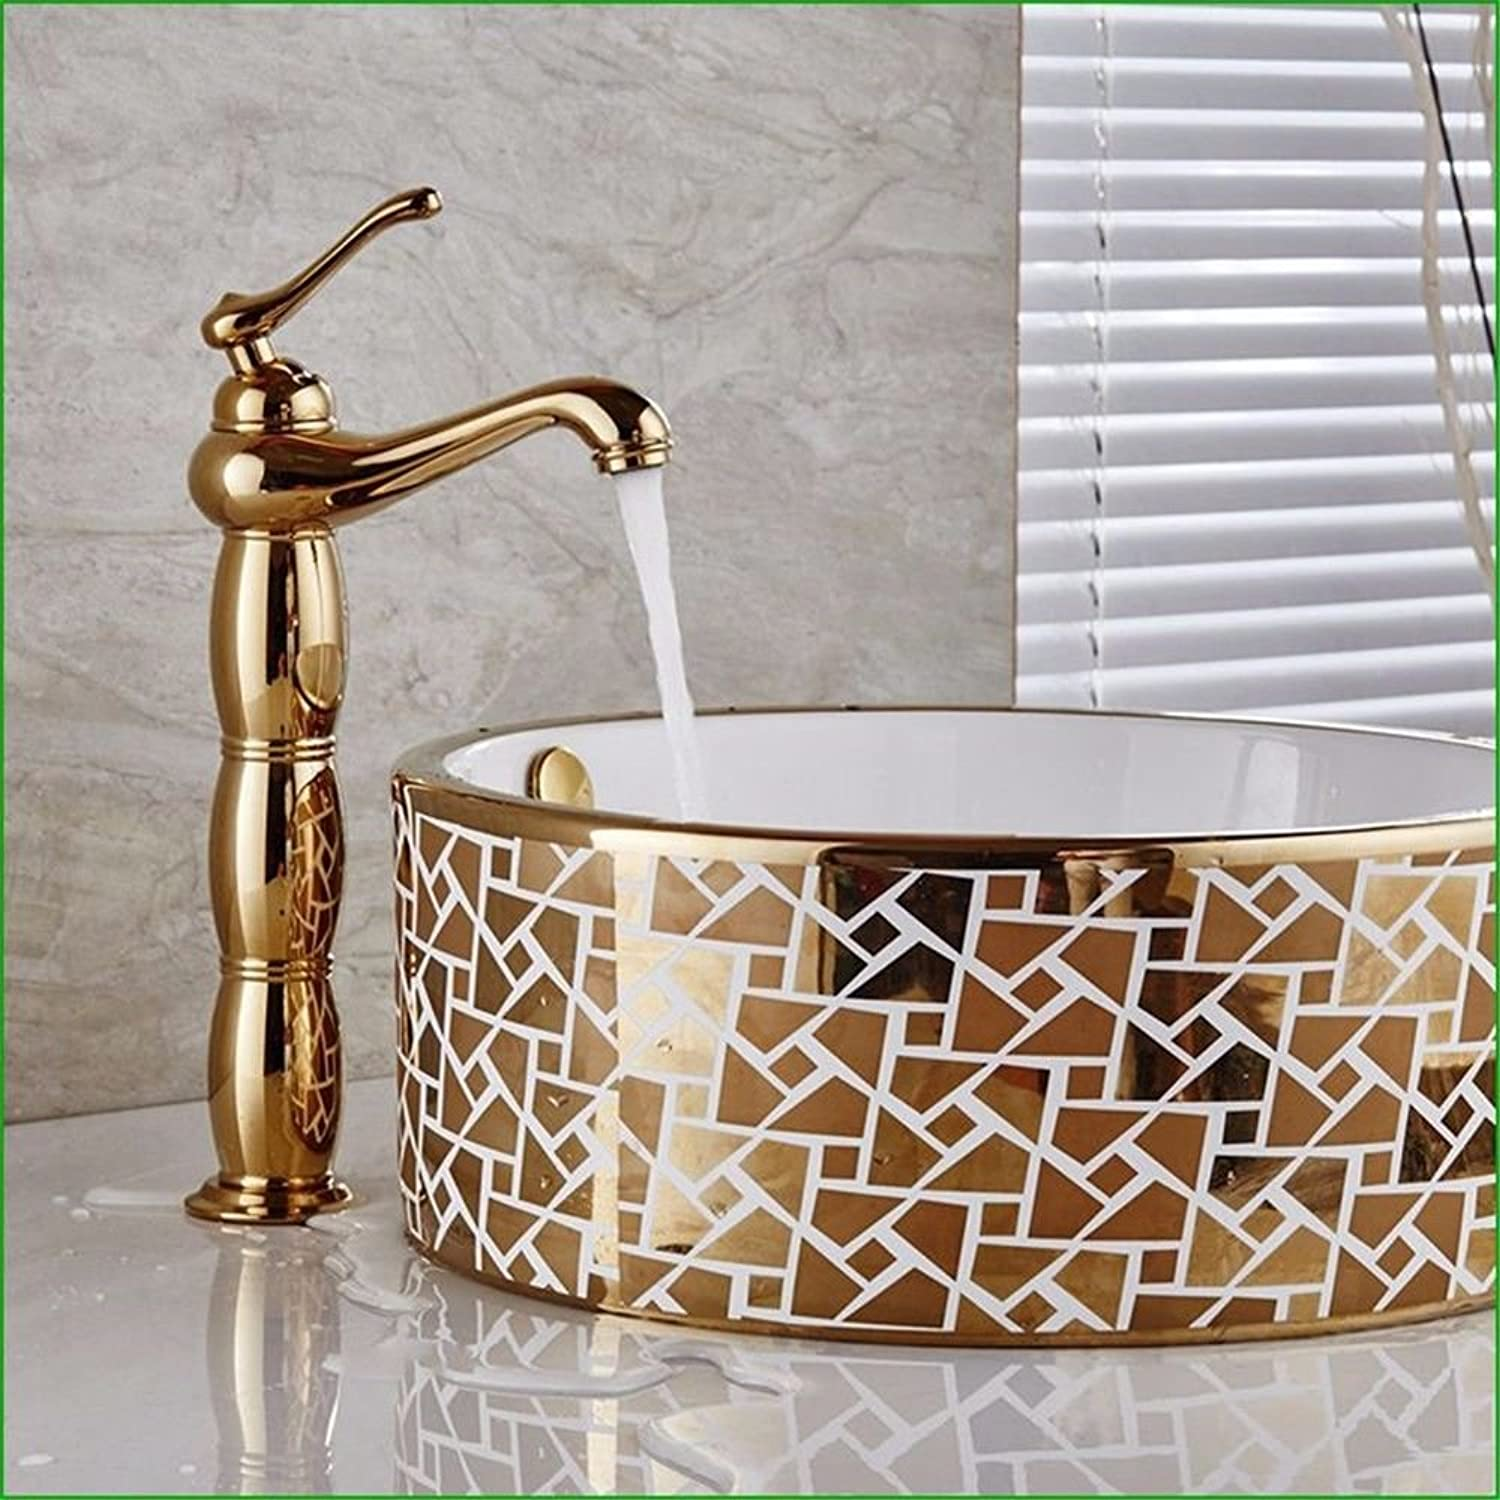 NewBorn Faucet Water Taps Hot And Cold Water Retro-Copper, gold-Plated Bathroom Water Tap Basin Surface Single Handle Single Hole Wash